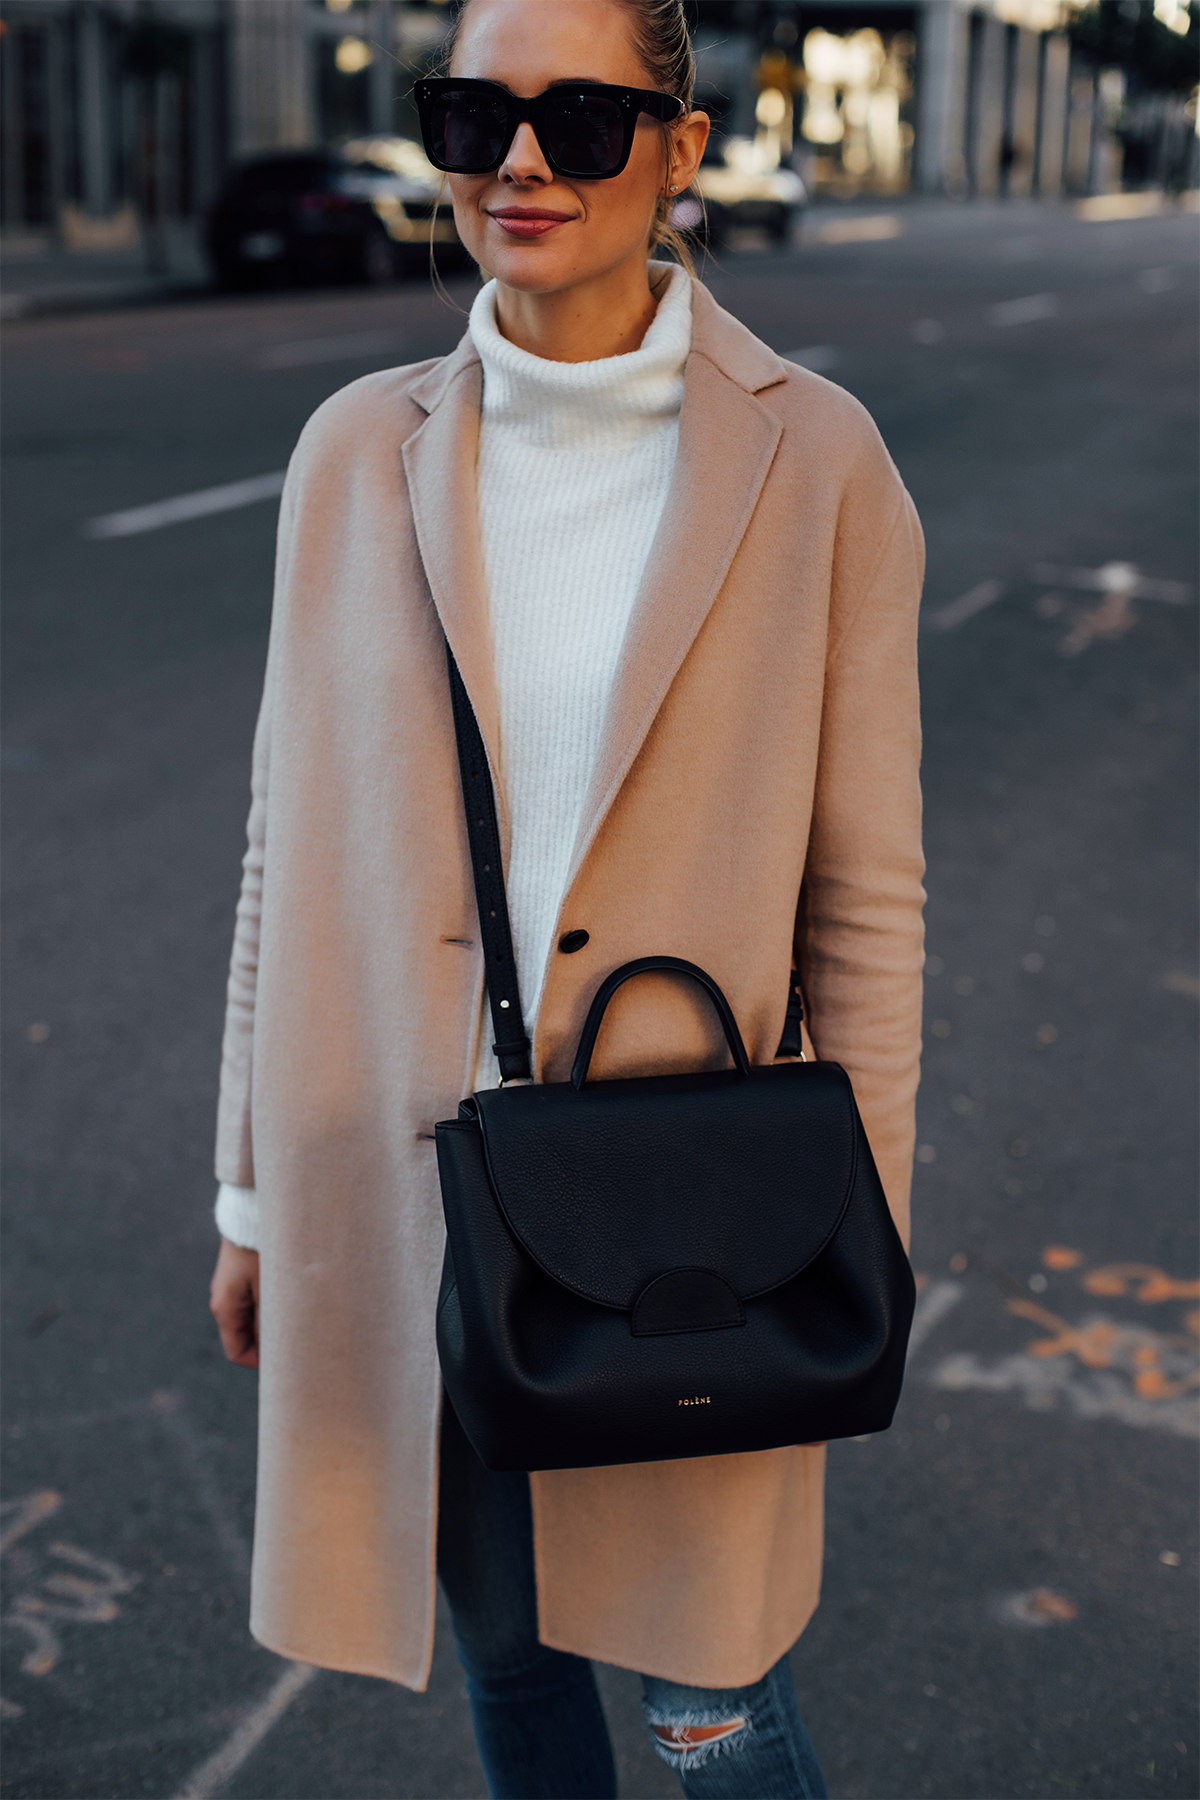 Blonde Woman Wearing AllSaints Camel Coat White Sweater Denim Skinny Ripped Jeans Polene Black Handbag Fashion Jackson San Diego Fashion Blogger Street Style